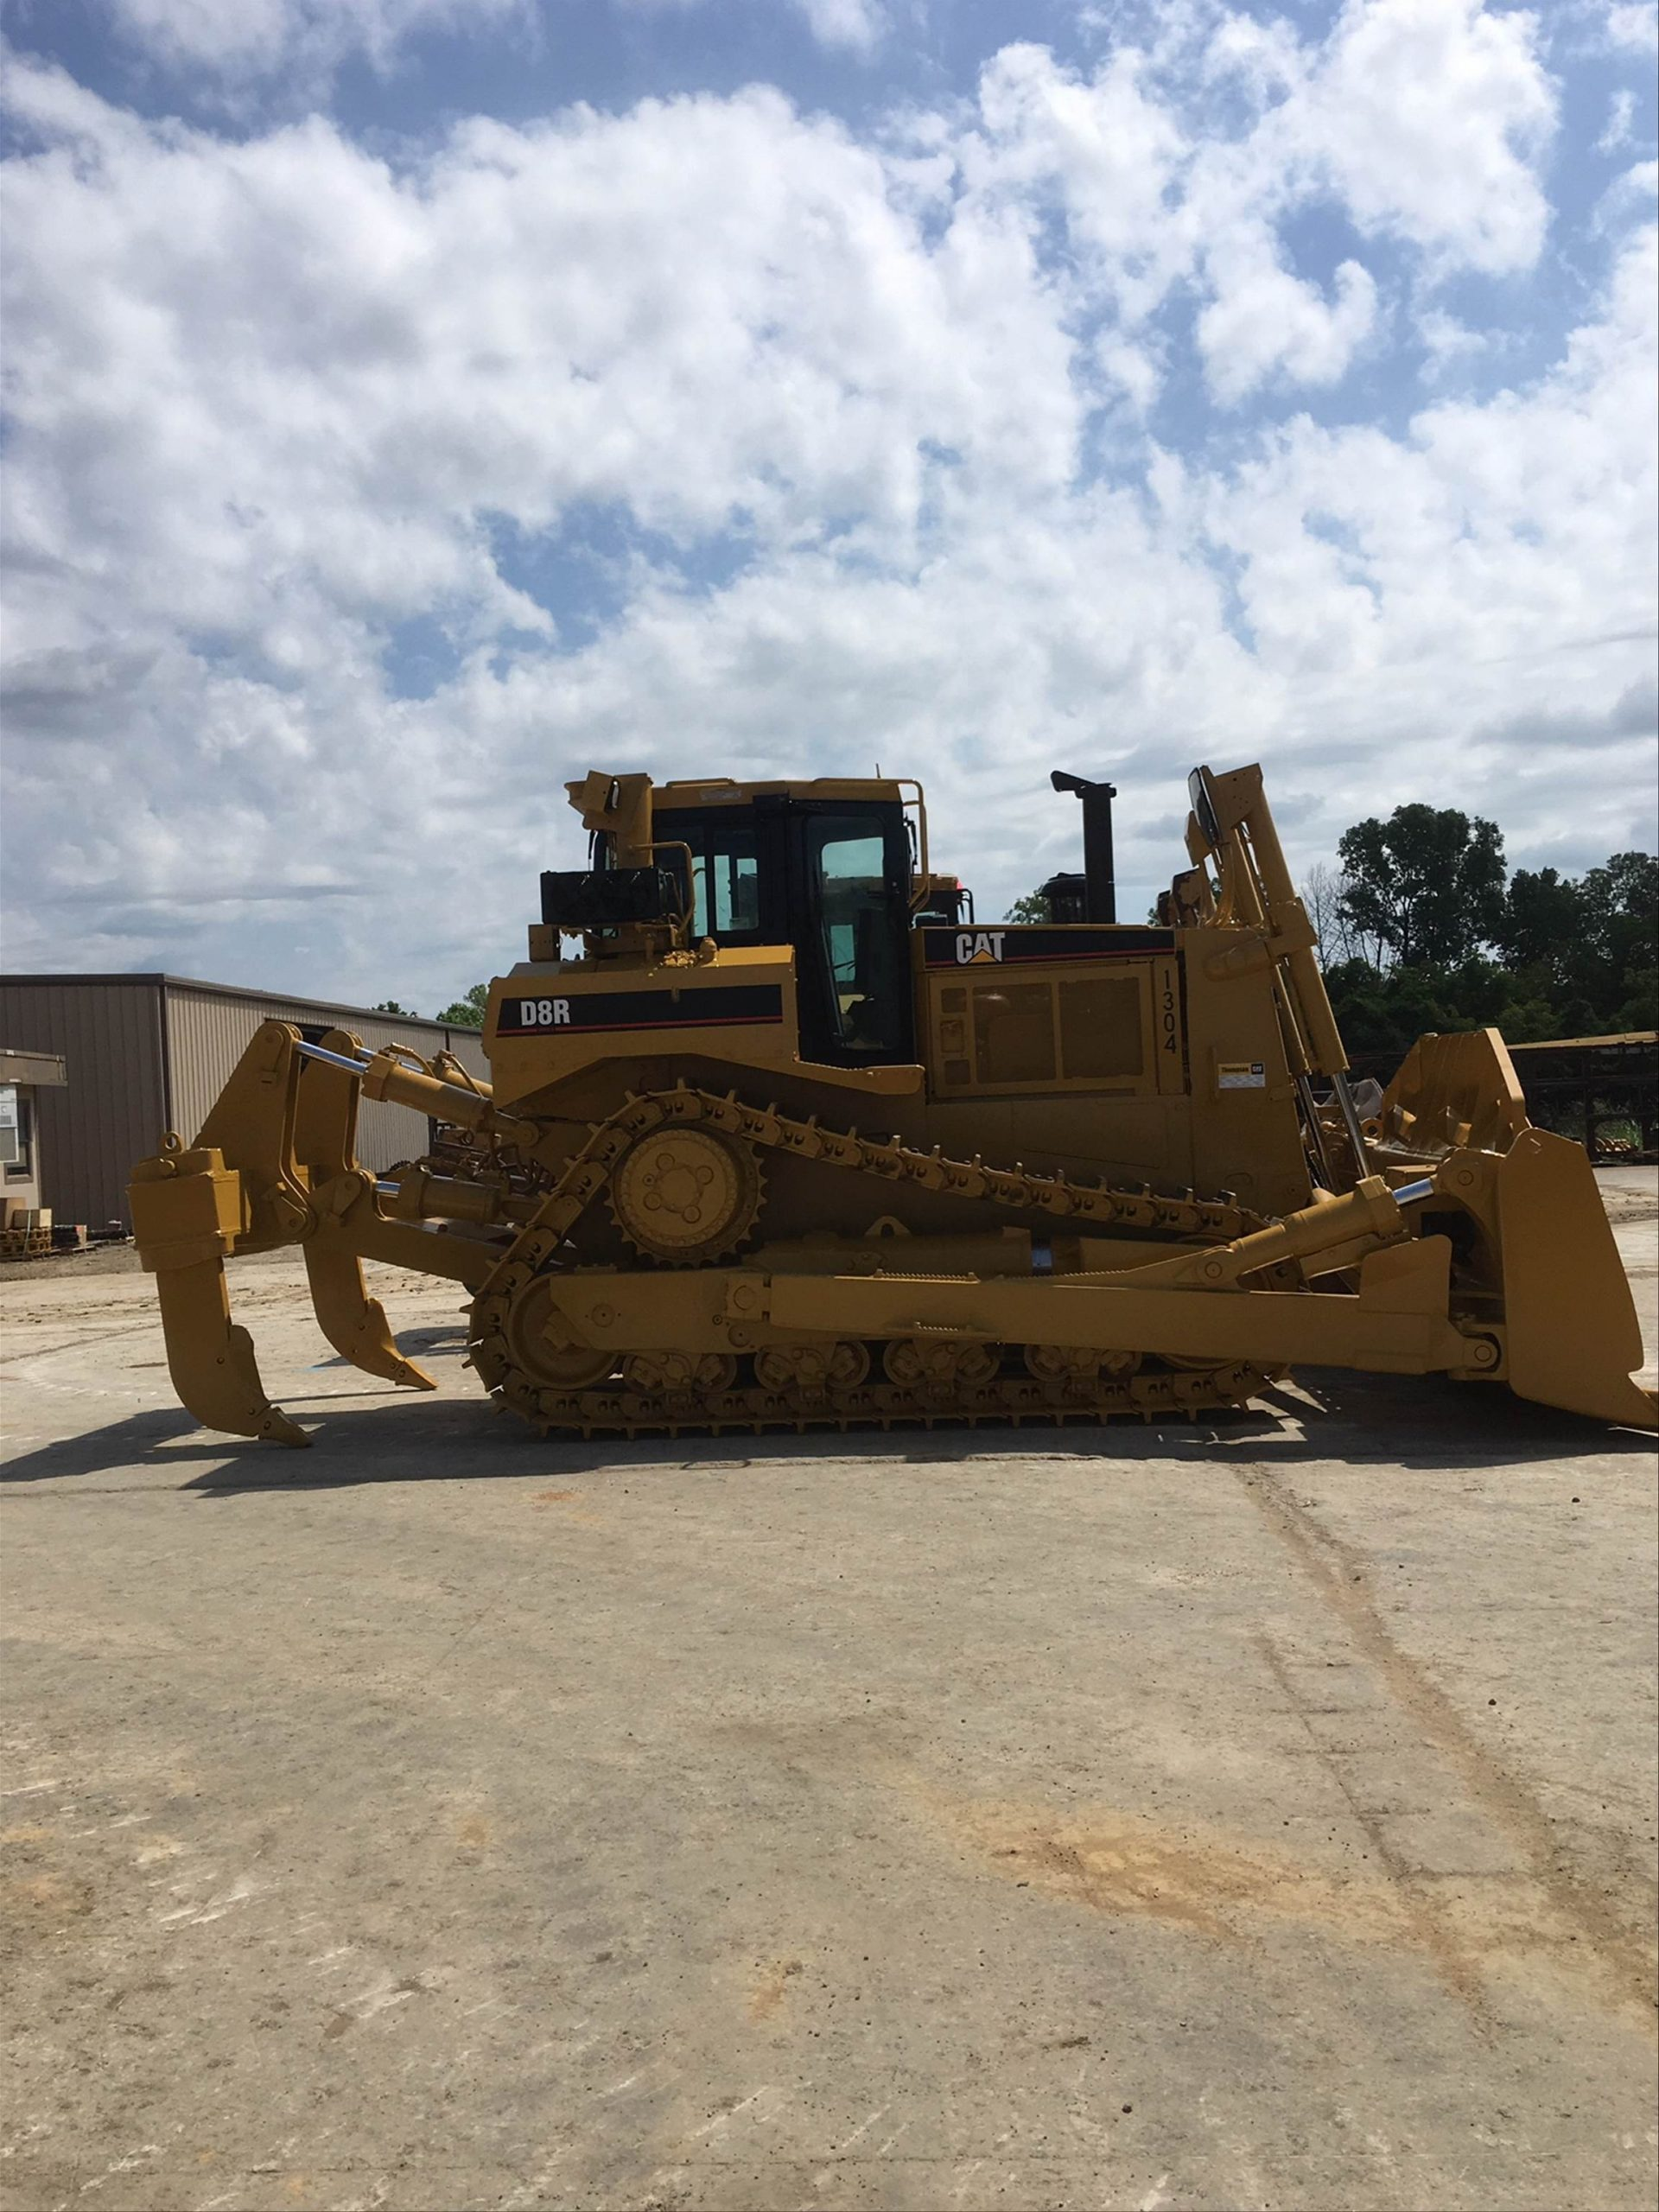 Cat dozer repainted